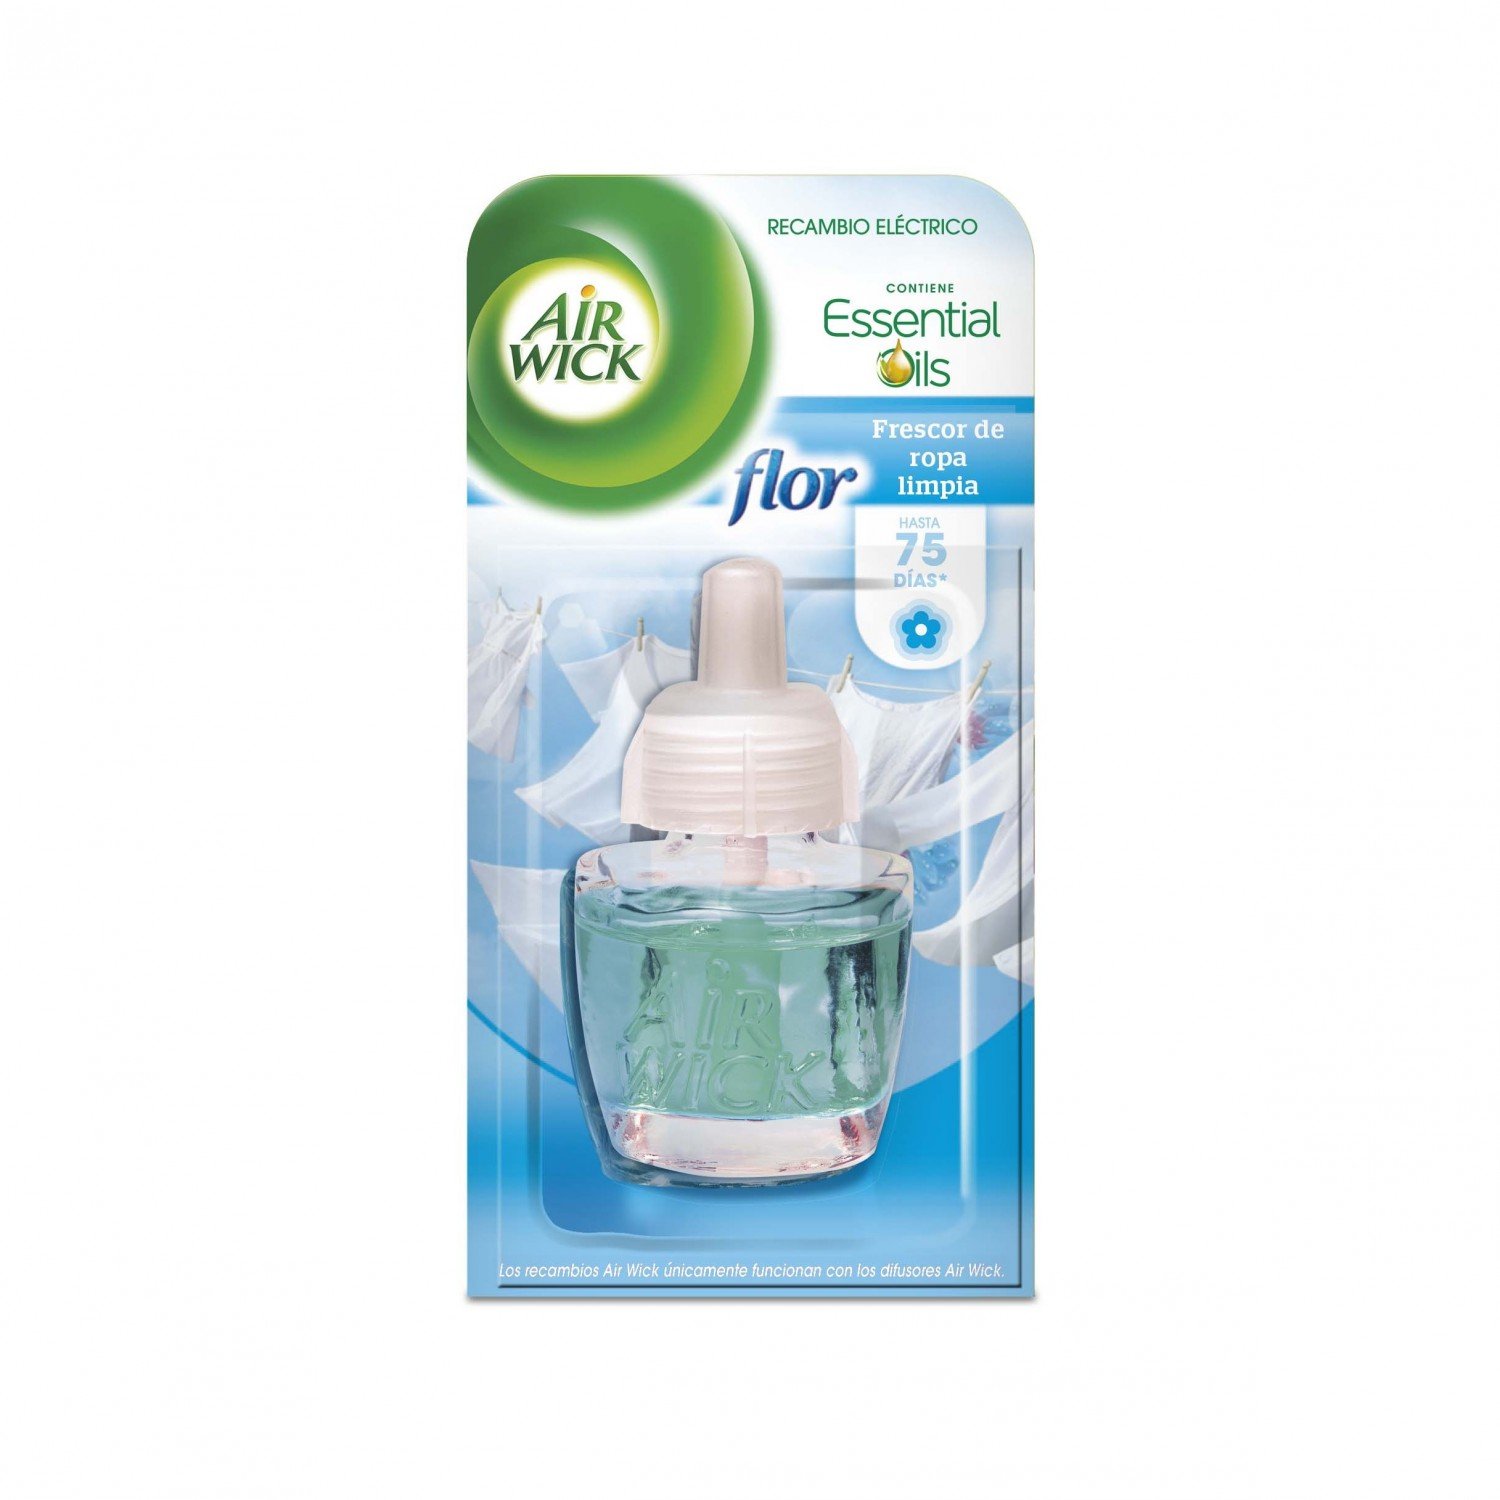 Air Wick ambientador fresh matic max recambio de 19ml.